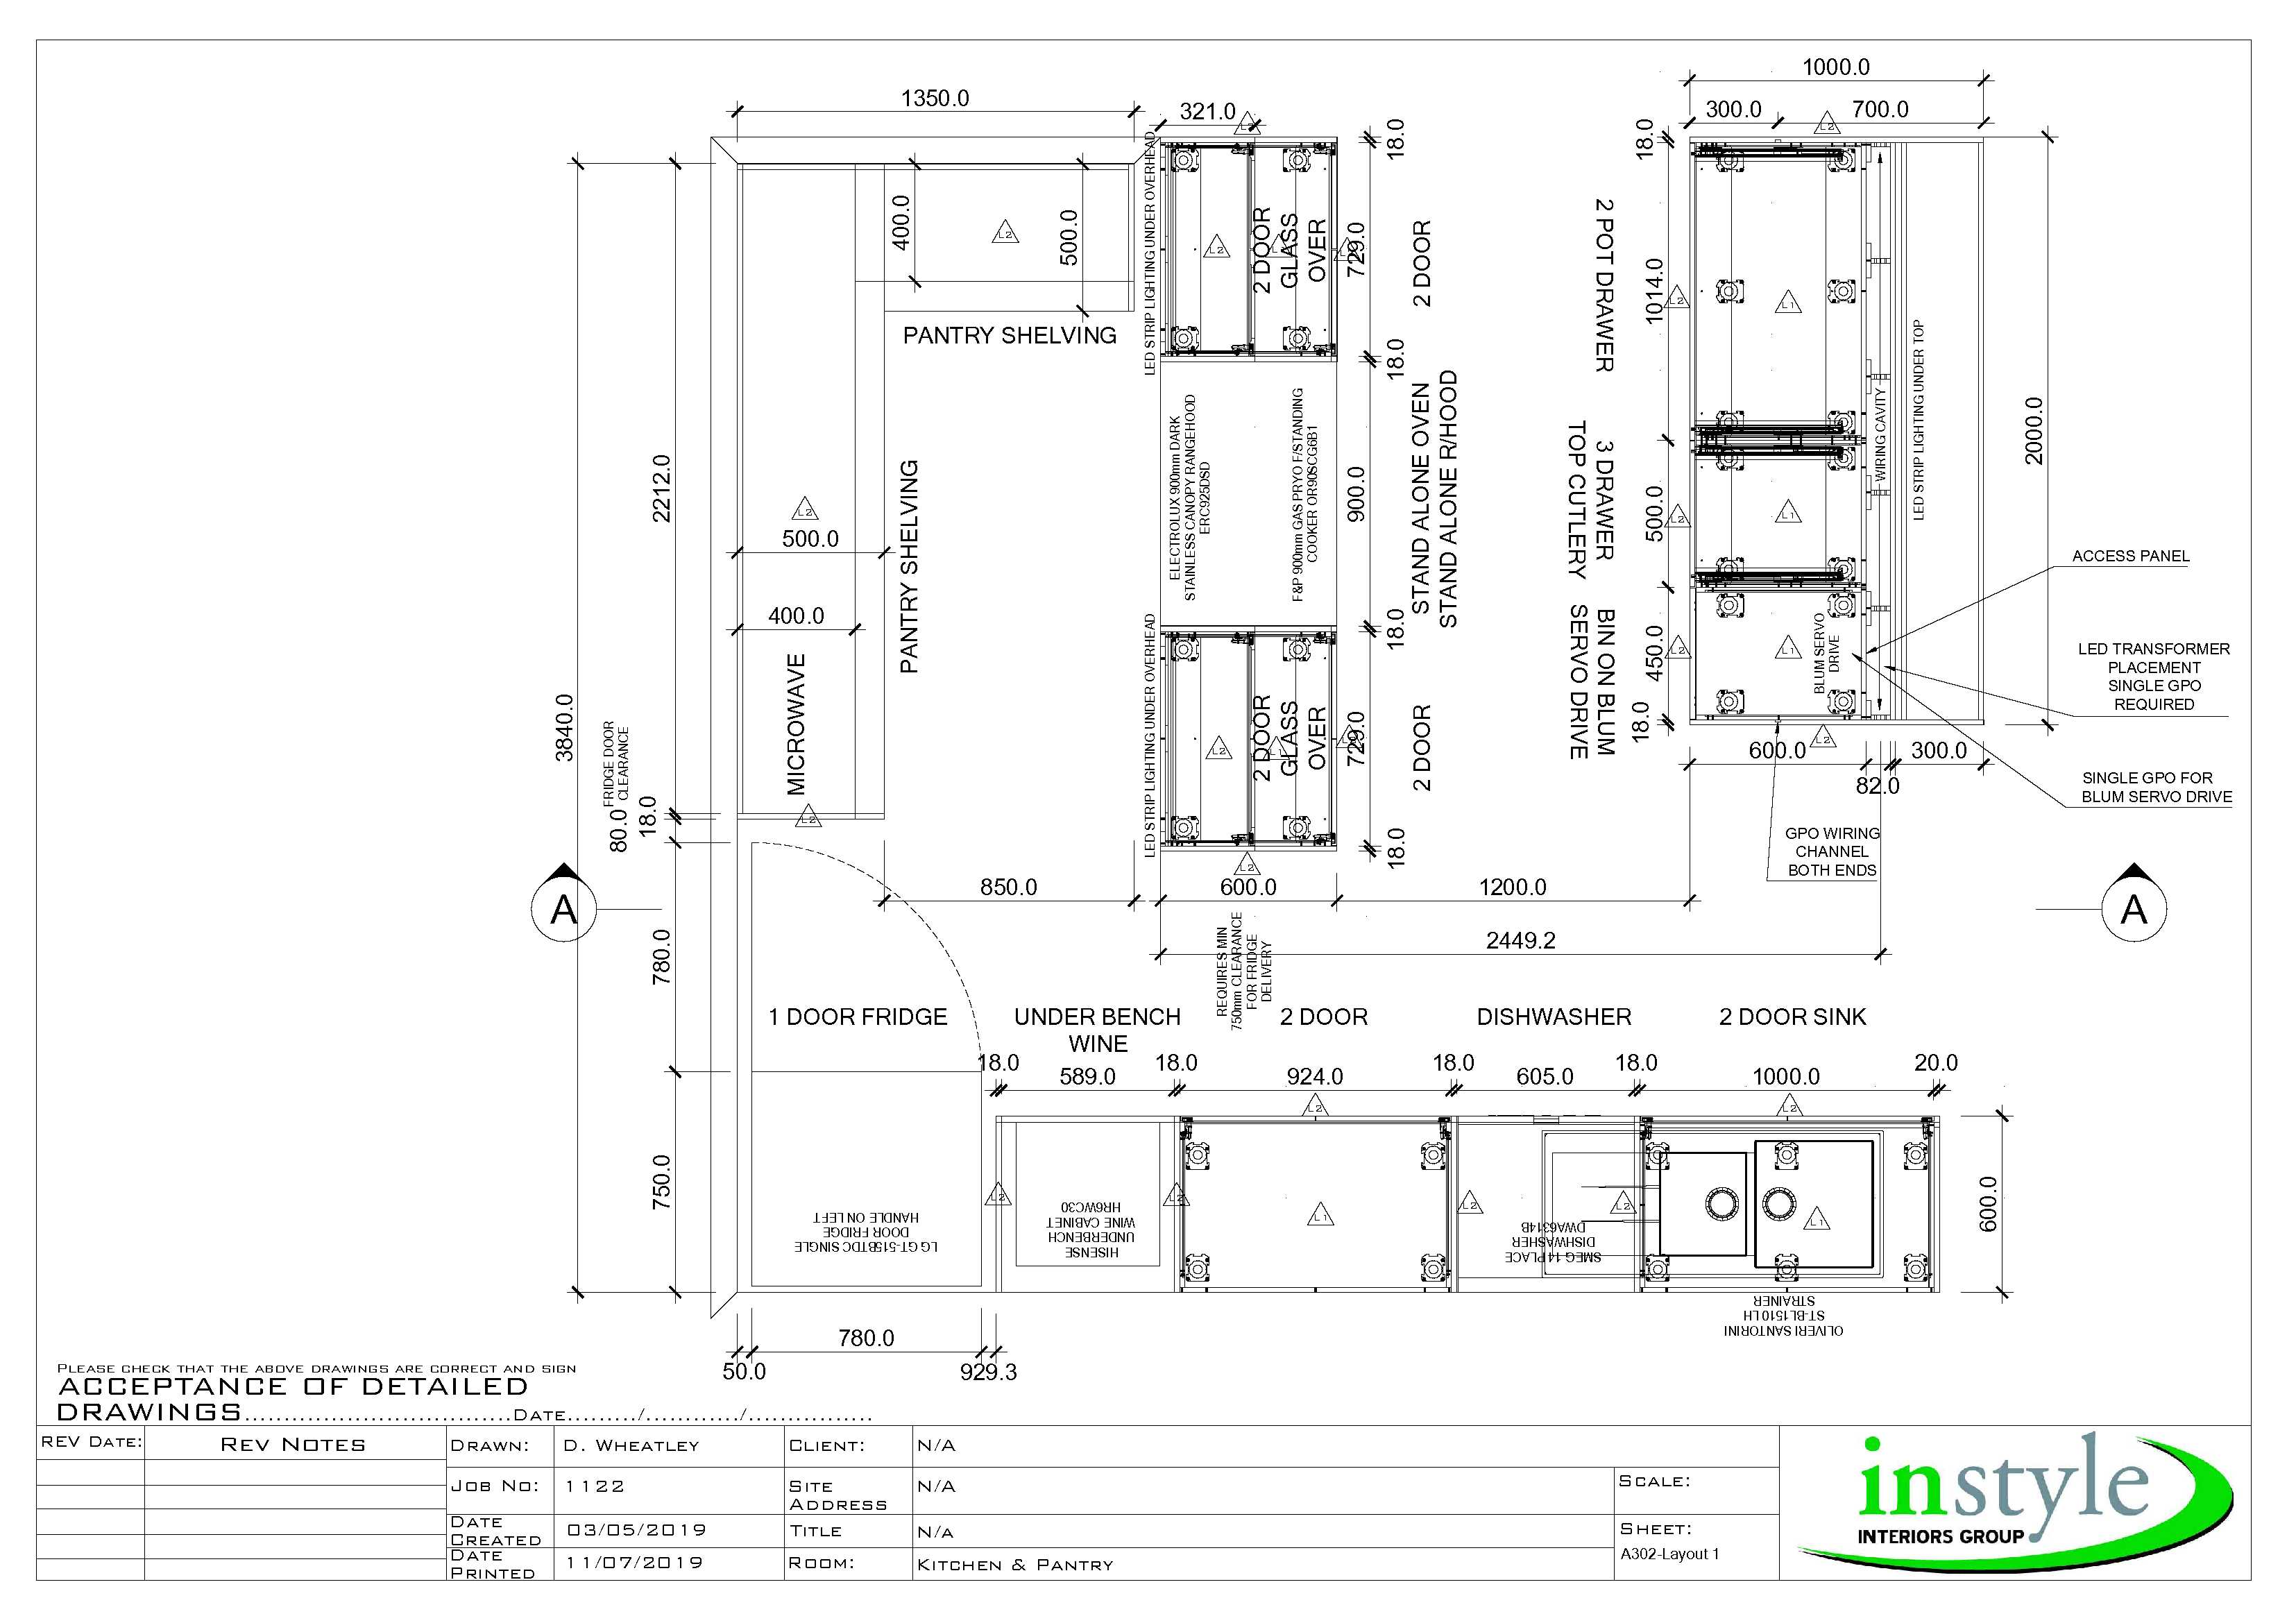 Cabinetry Design 2d 3d Concepts Instyle Kitchens Cabinets